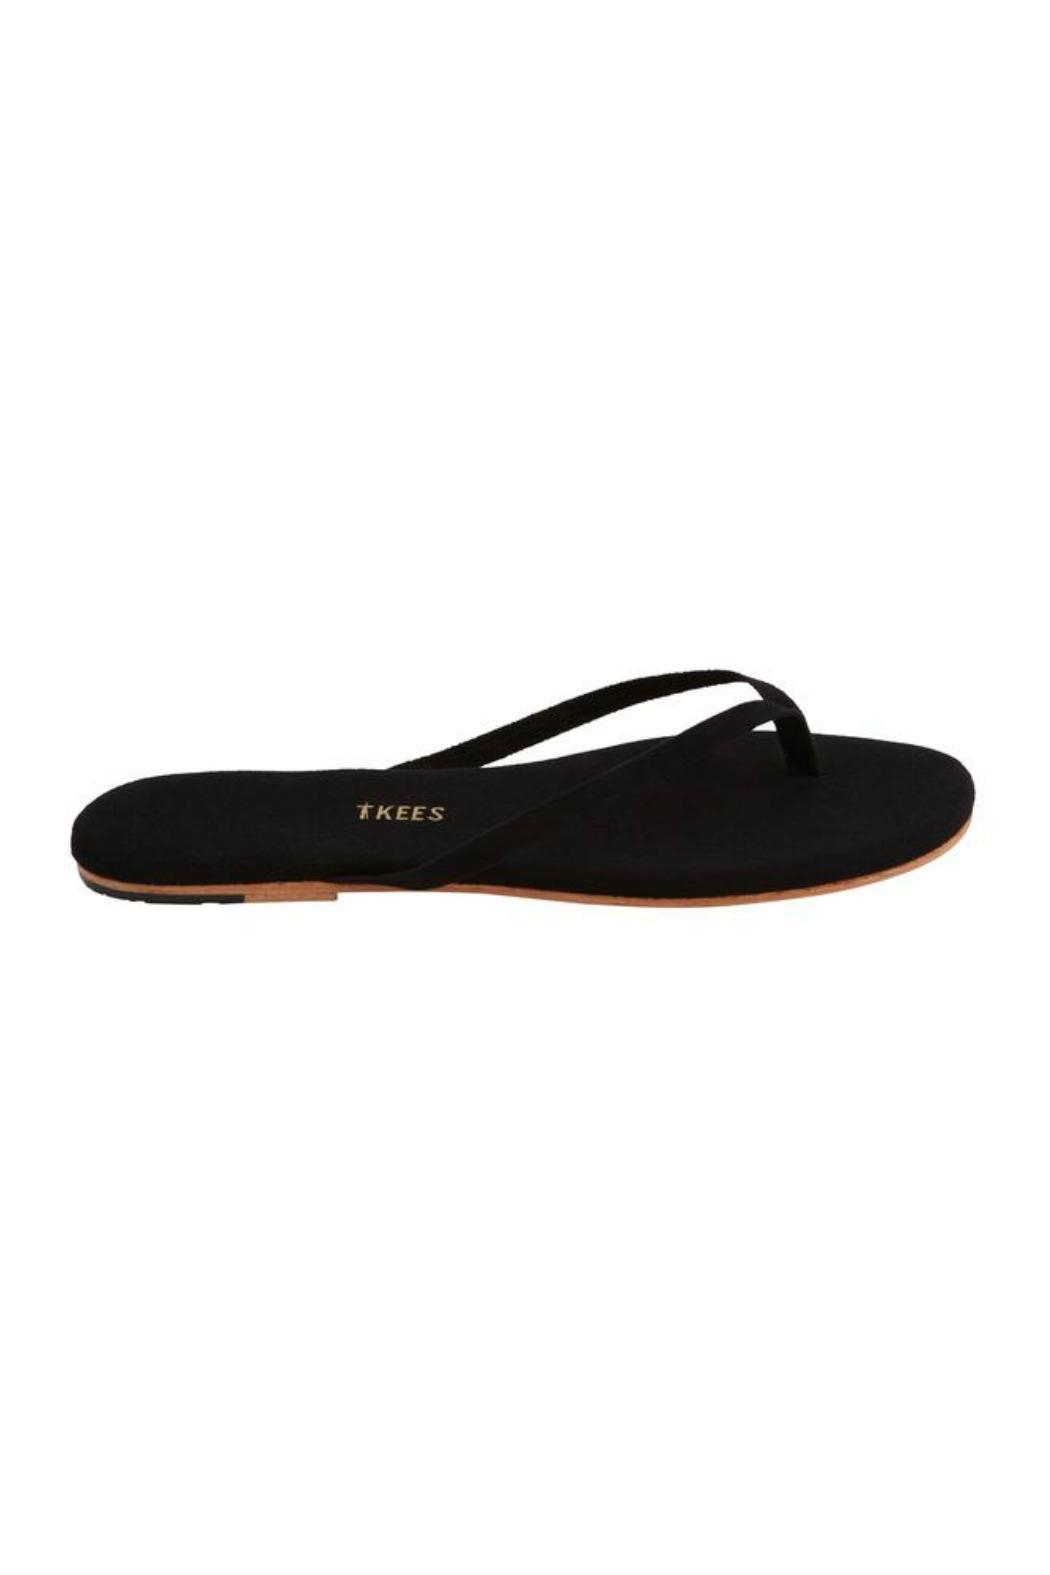 Tkees Lily Suede Sandals - Front Full Image